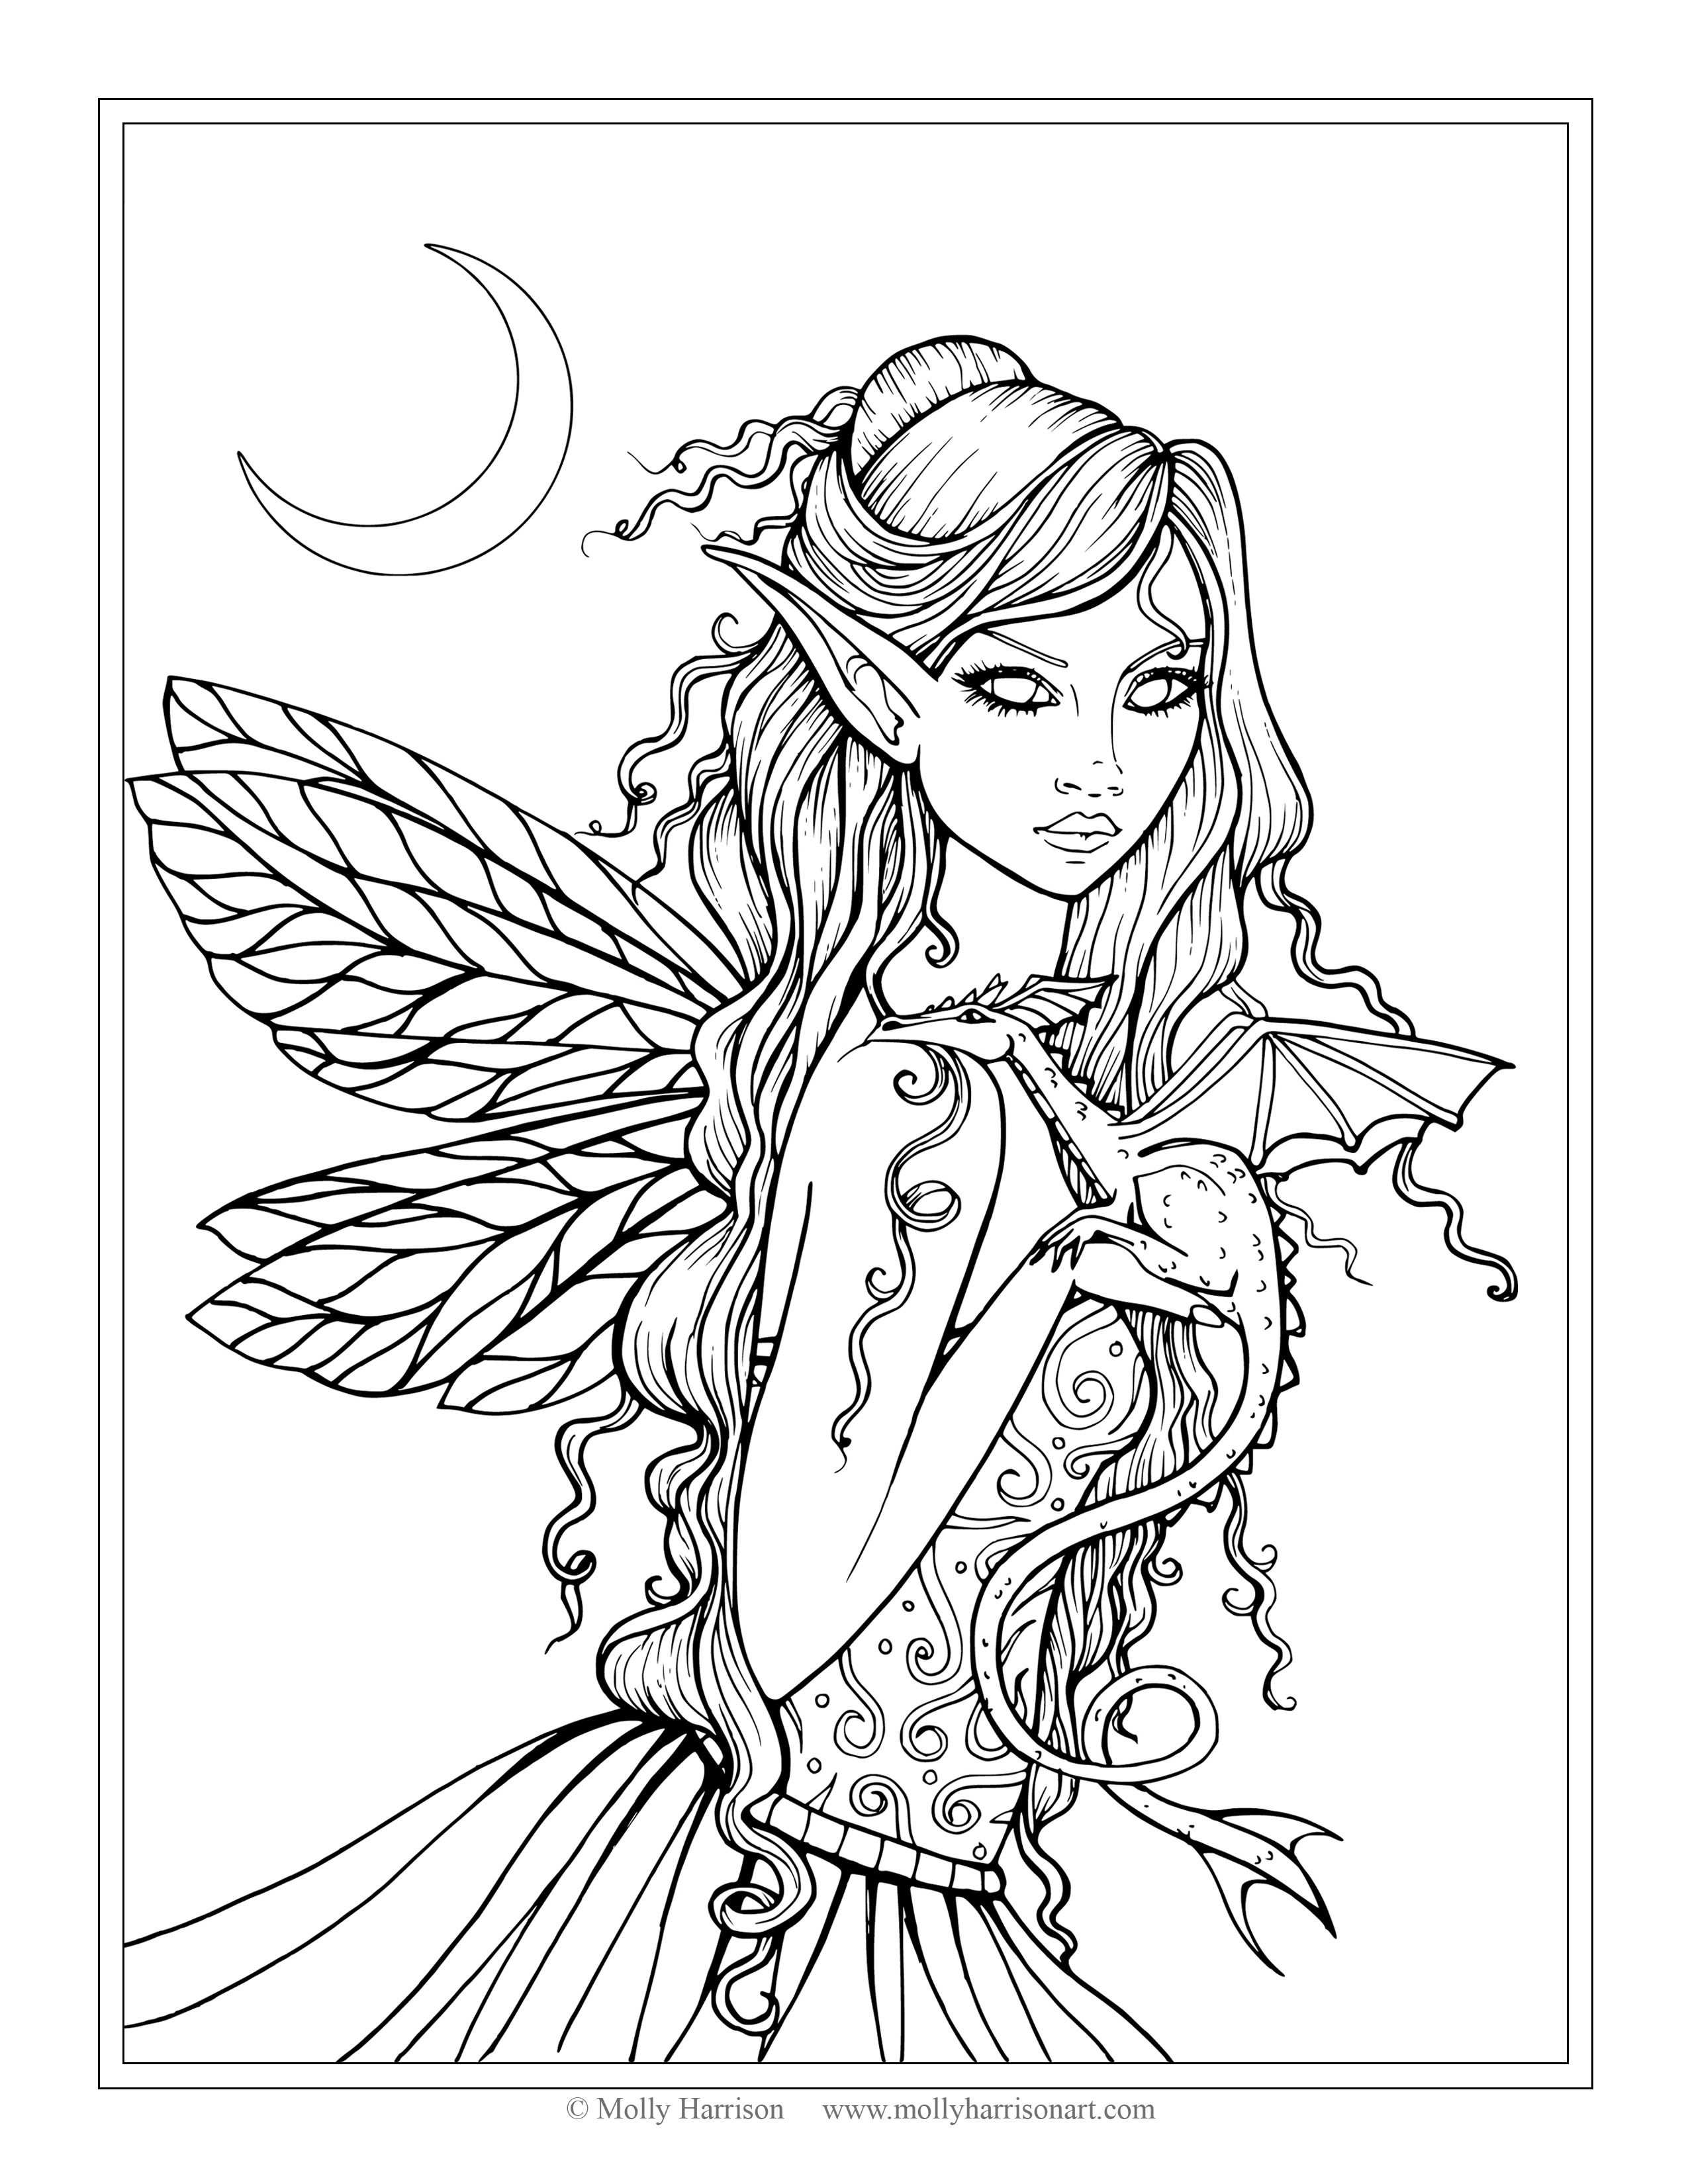 Free Fairy And Dragon Coloring Page By Molly Harrison Fantasy Art Amethyst